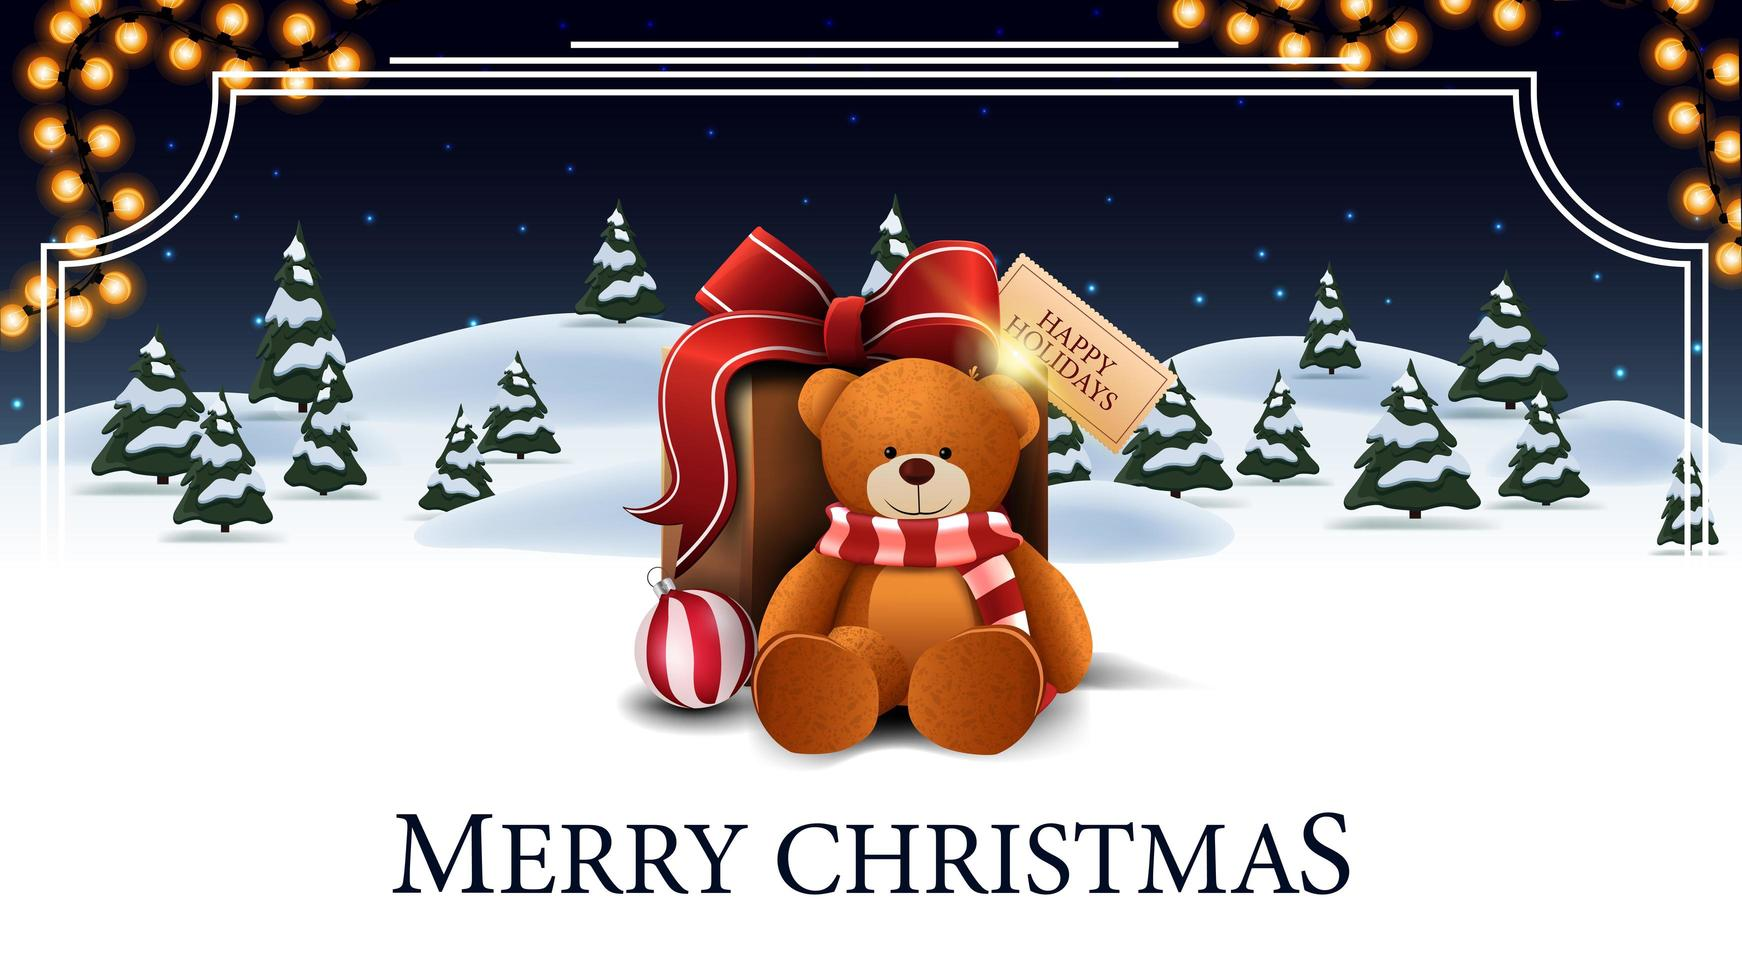 Merry Christmas, white and blue postcard with cartoon winter forest with spruces, starry sky, garland and present with Teddy bear vector